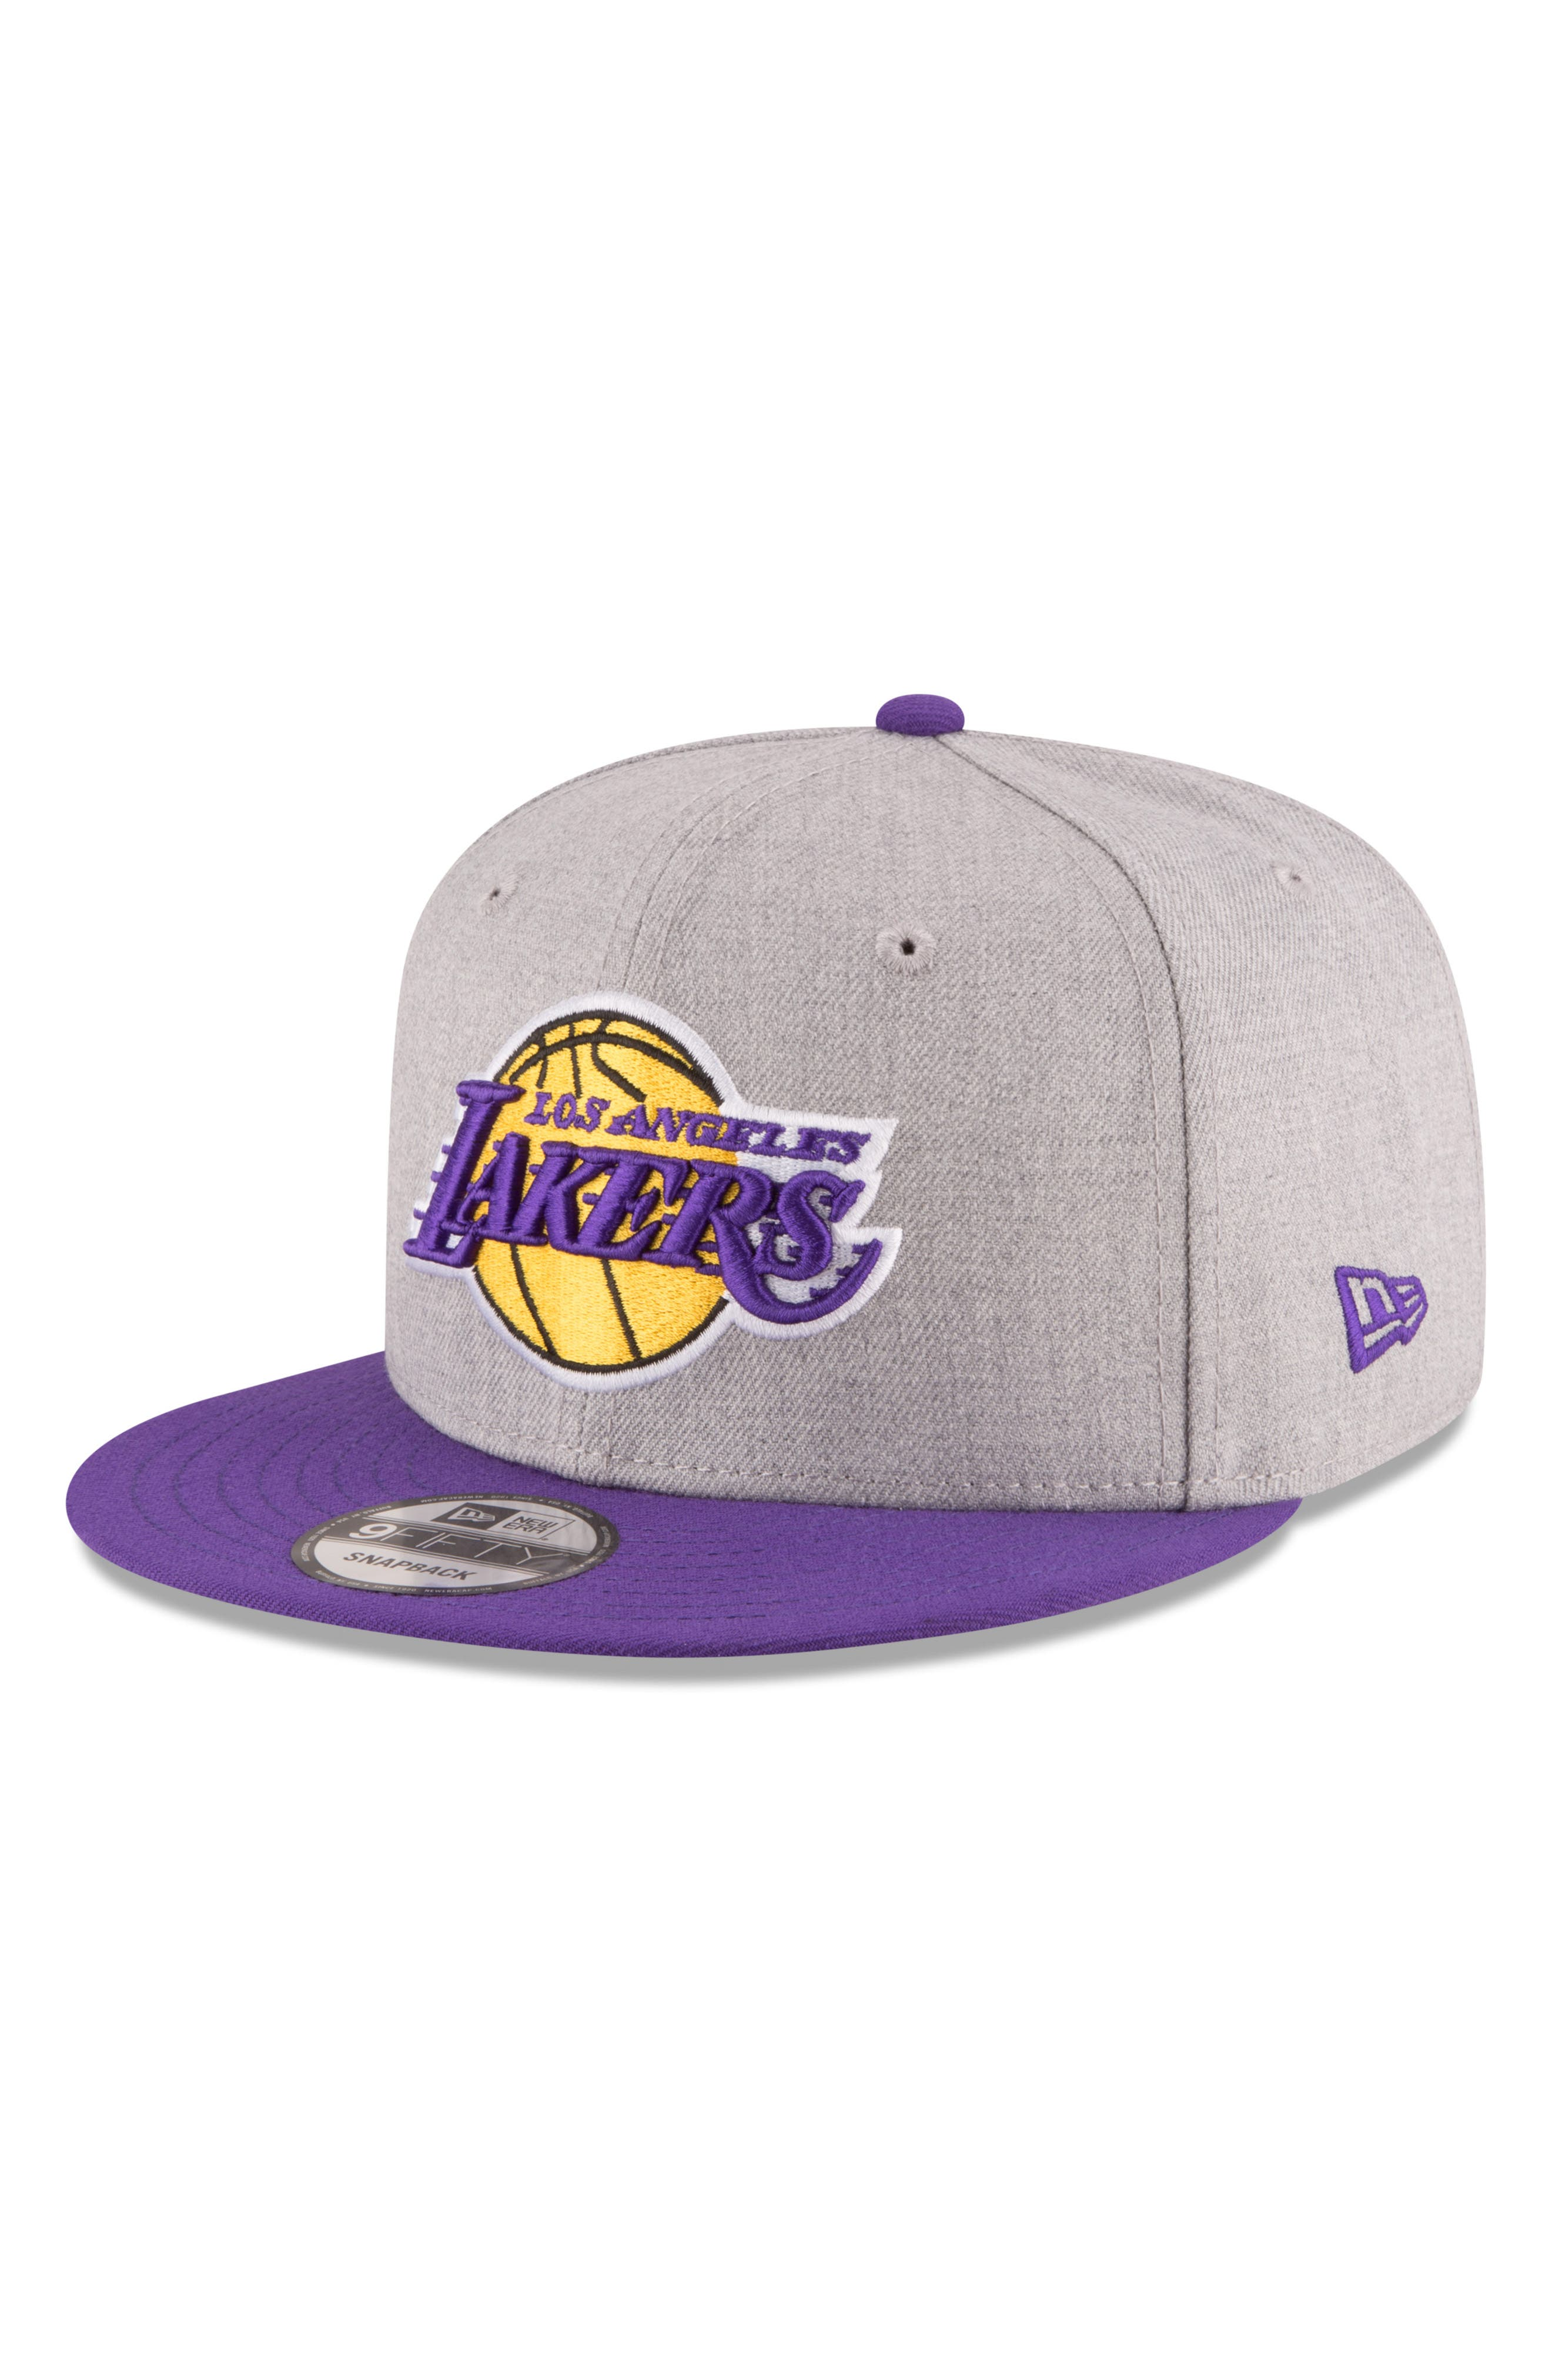 9FIFTY LA Lakers Two-Tone Cap,                             Main thumbnail 1, color,                             020